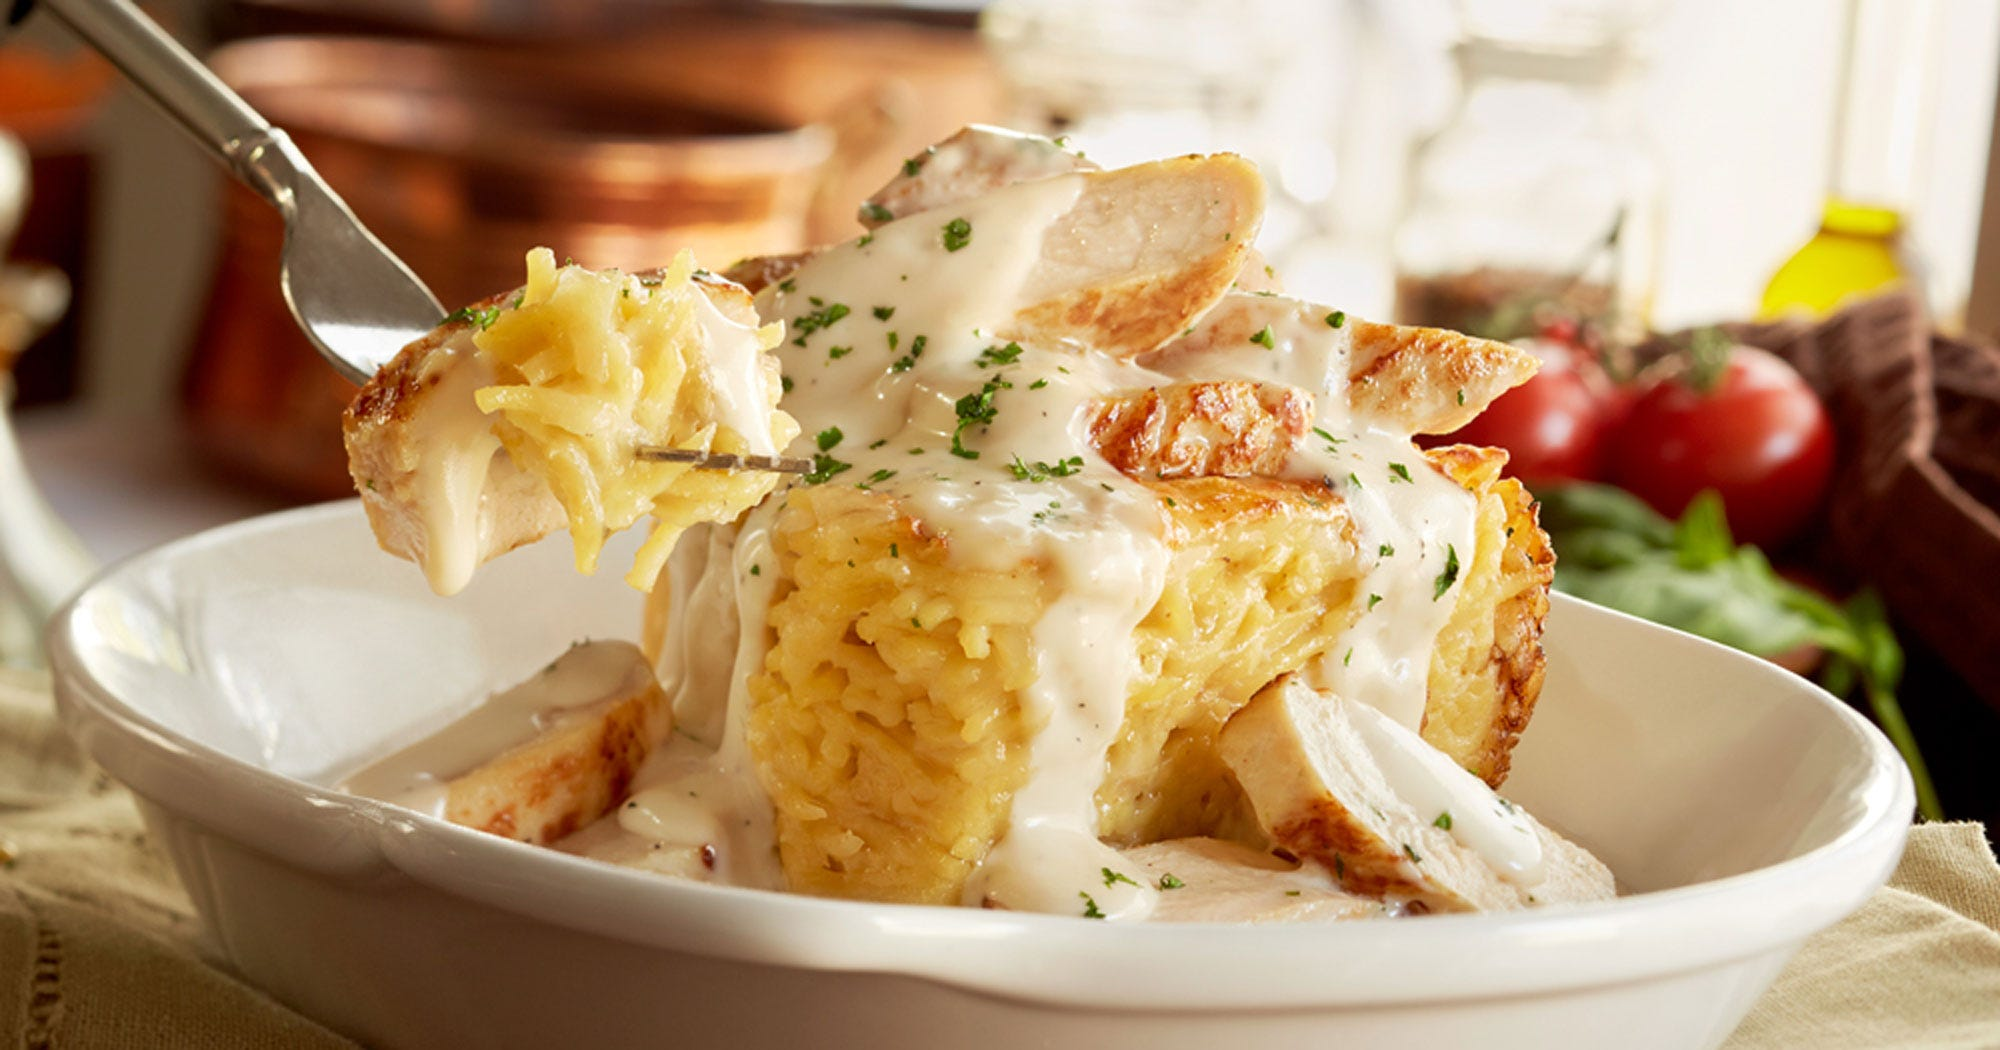 Olive garden new menu items spaghetti pie Does olive garden have take out